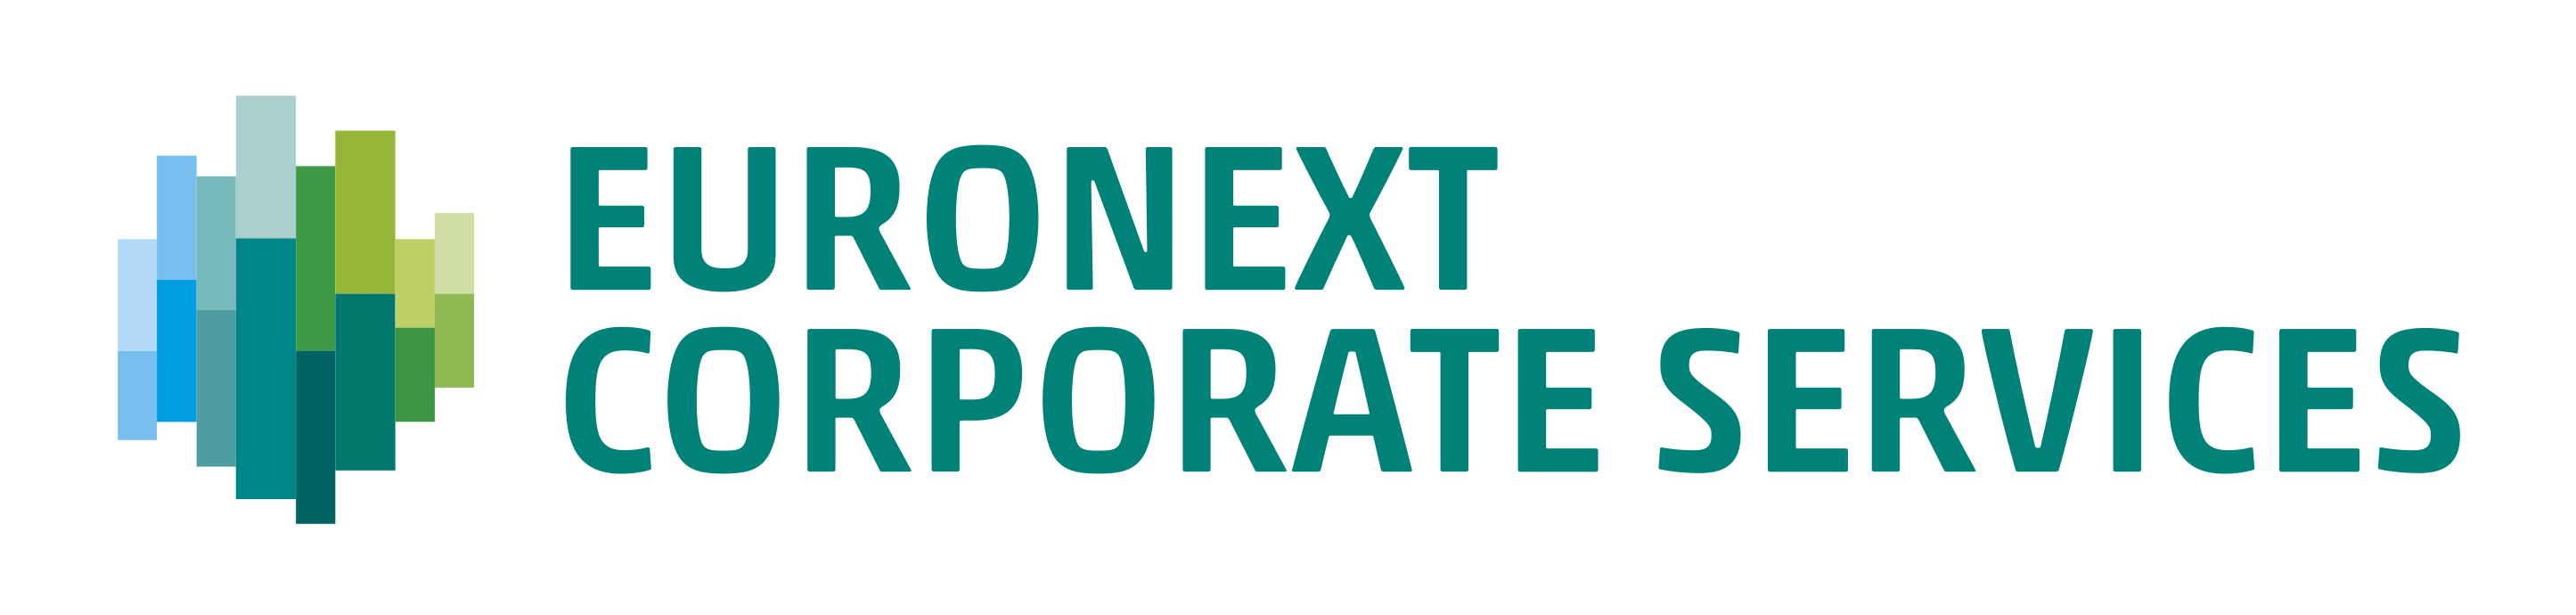 Euronext Corporate Services